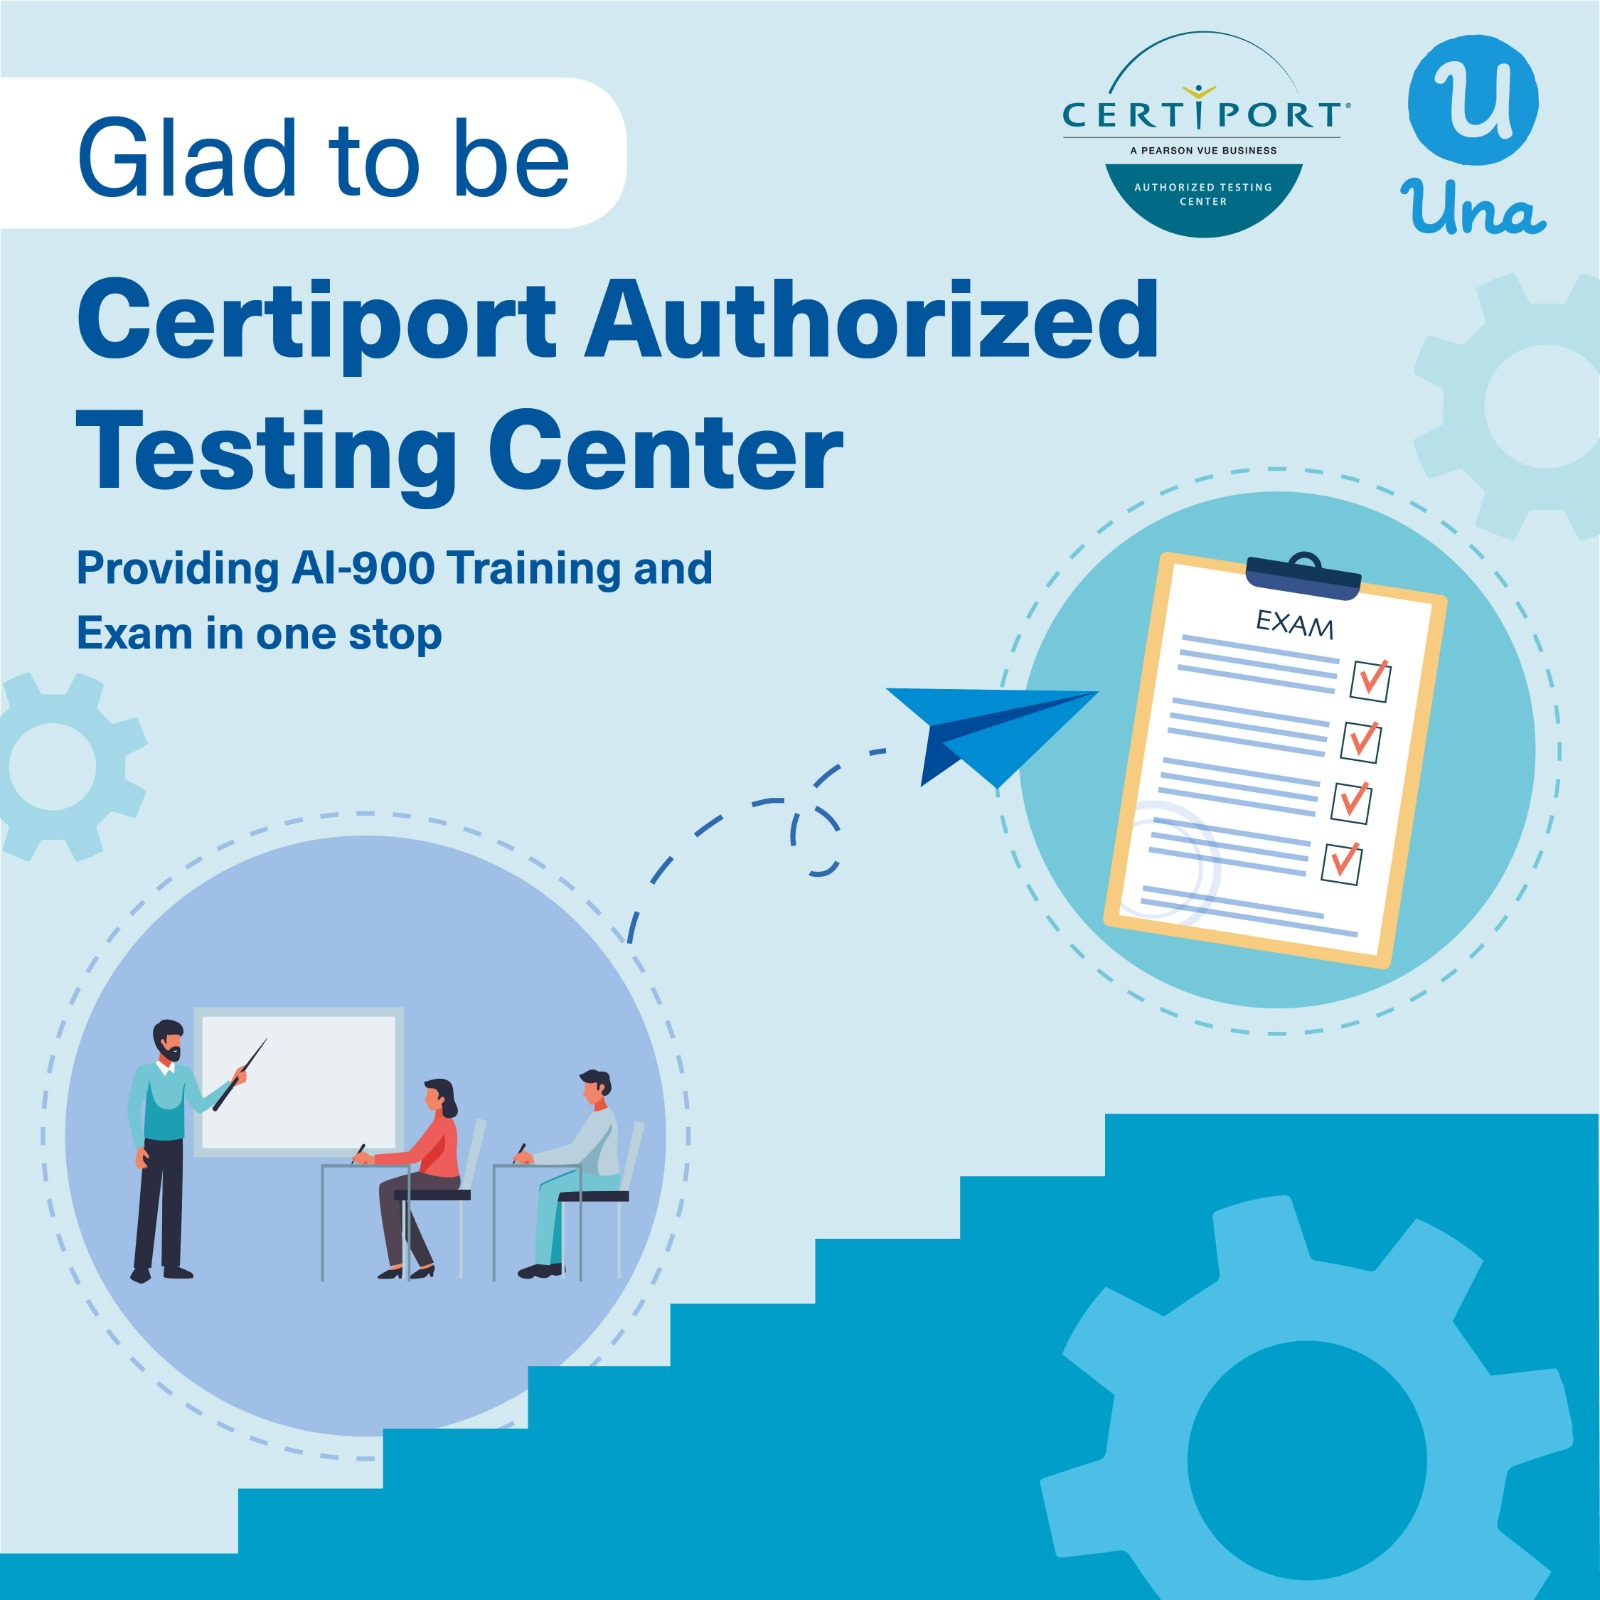 Una Accomplishment: Officially become Certiport Authorized Testing Center